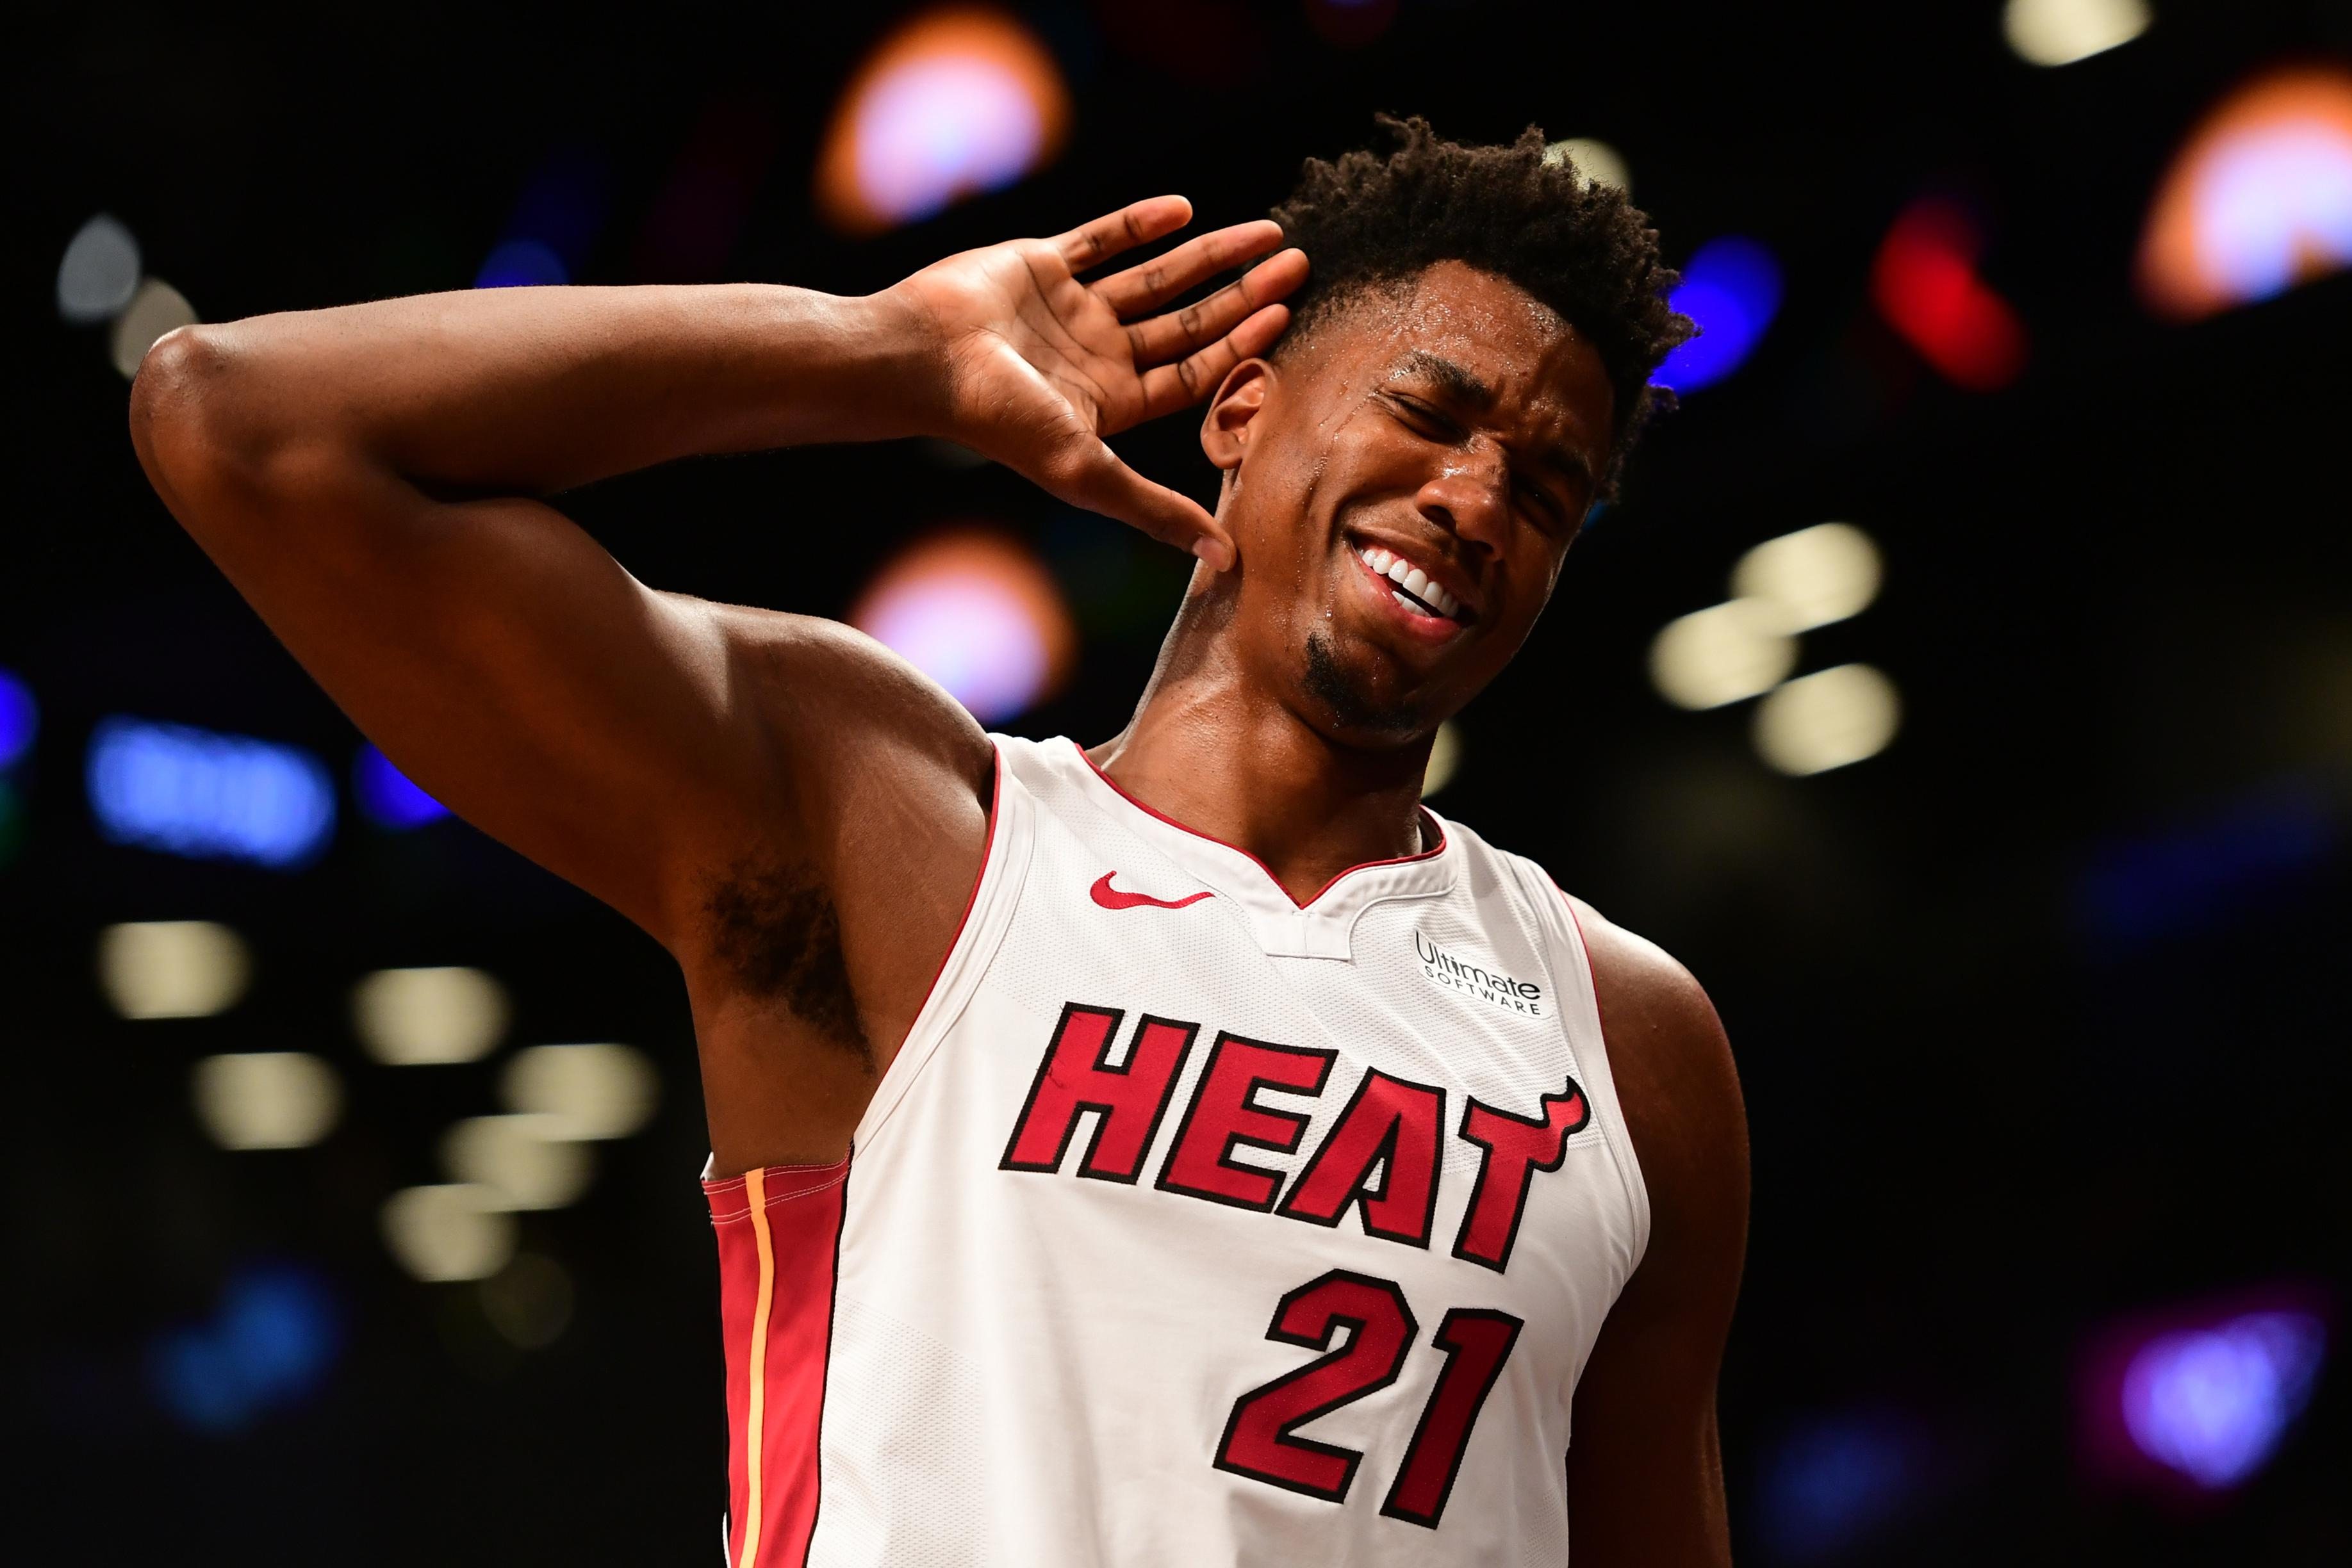 Hassan Whiteside #21 of the Miami Heat motions for the fans to get louder during the final moments of the game against Brooklyn Nets at Barclays Center on November 14, 2018 in the Brooklyn borough of New York City.